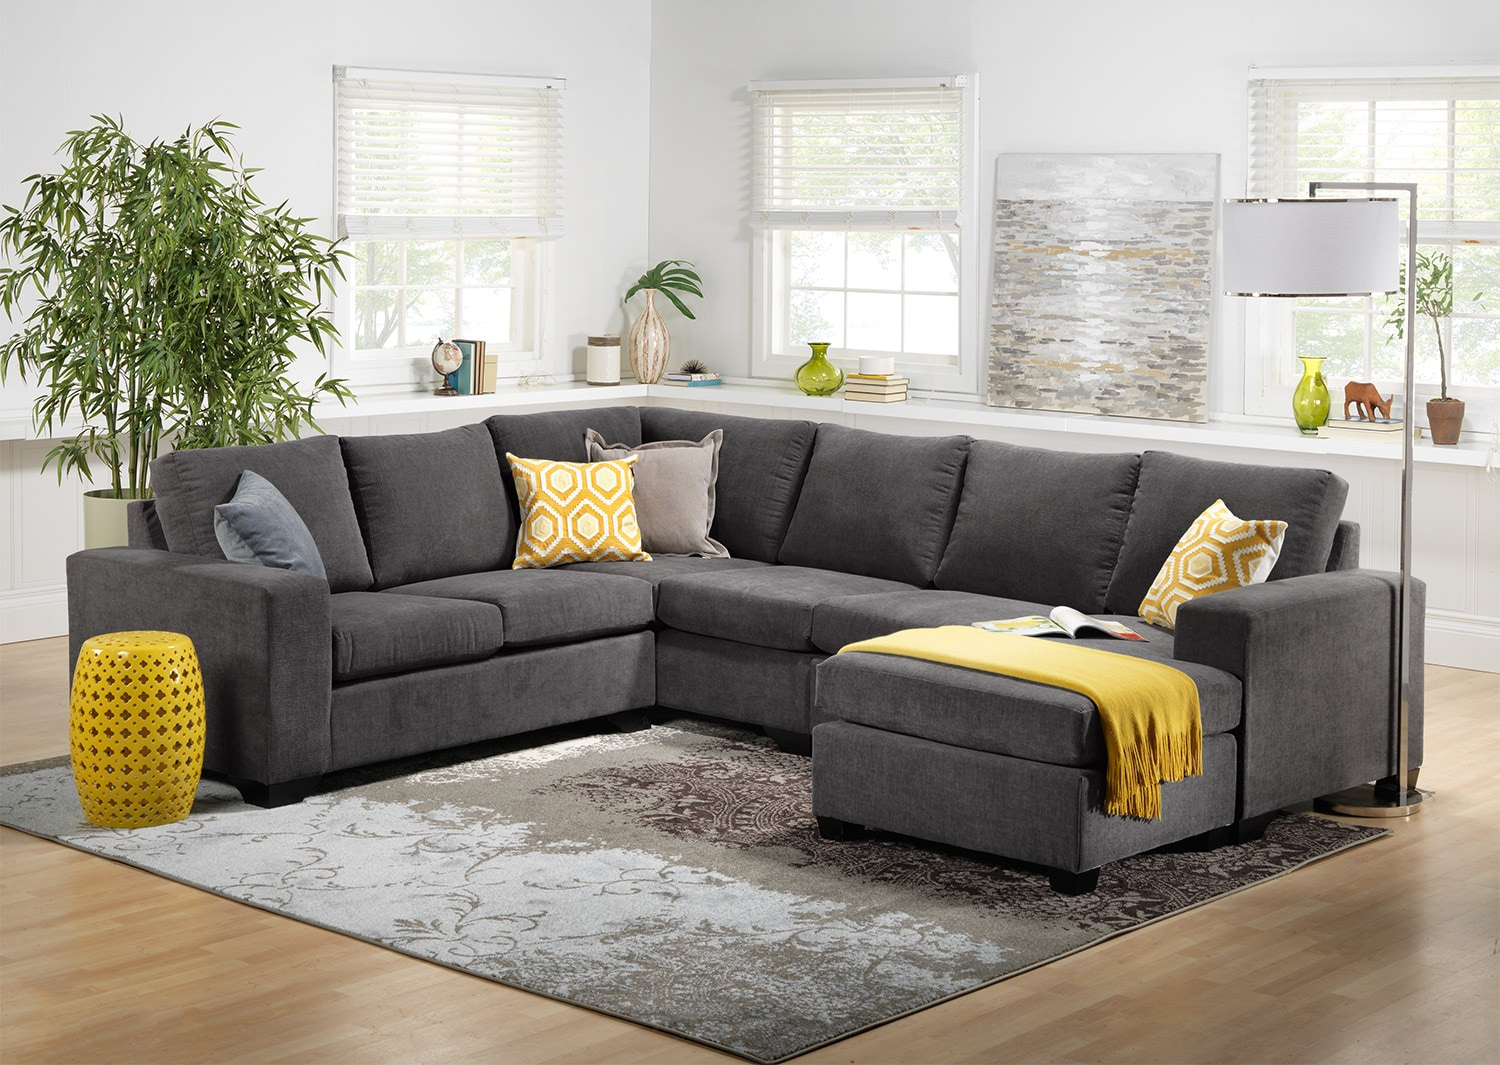 Danielle 3 piece sectional with right facing corner wedge for Drawing room furniture design